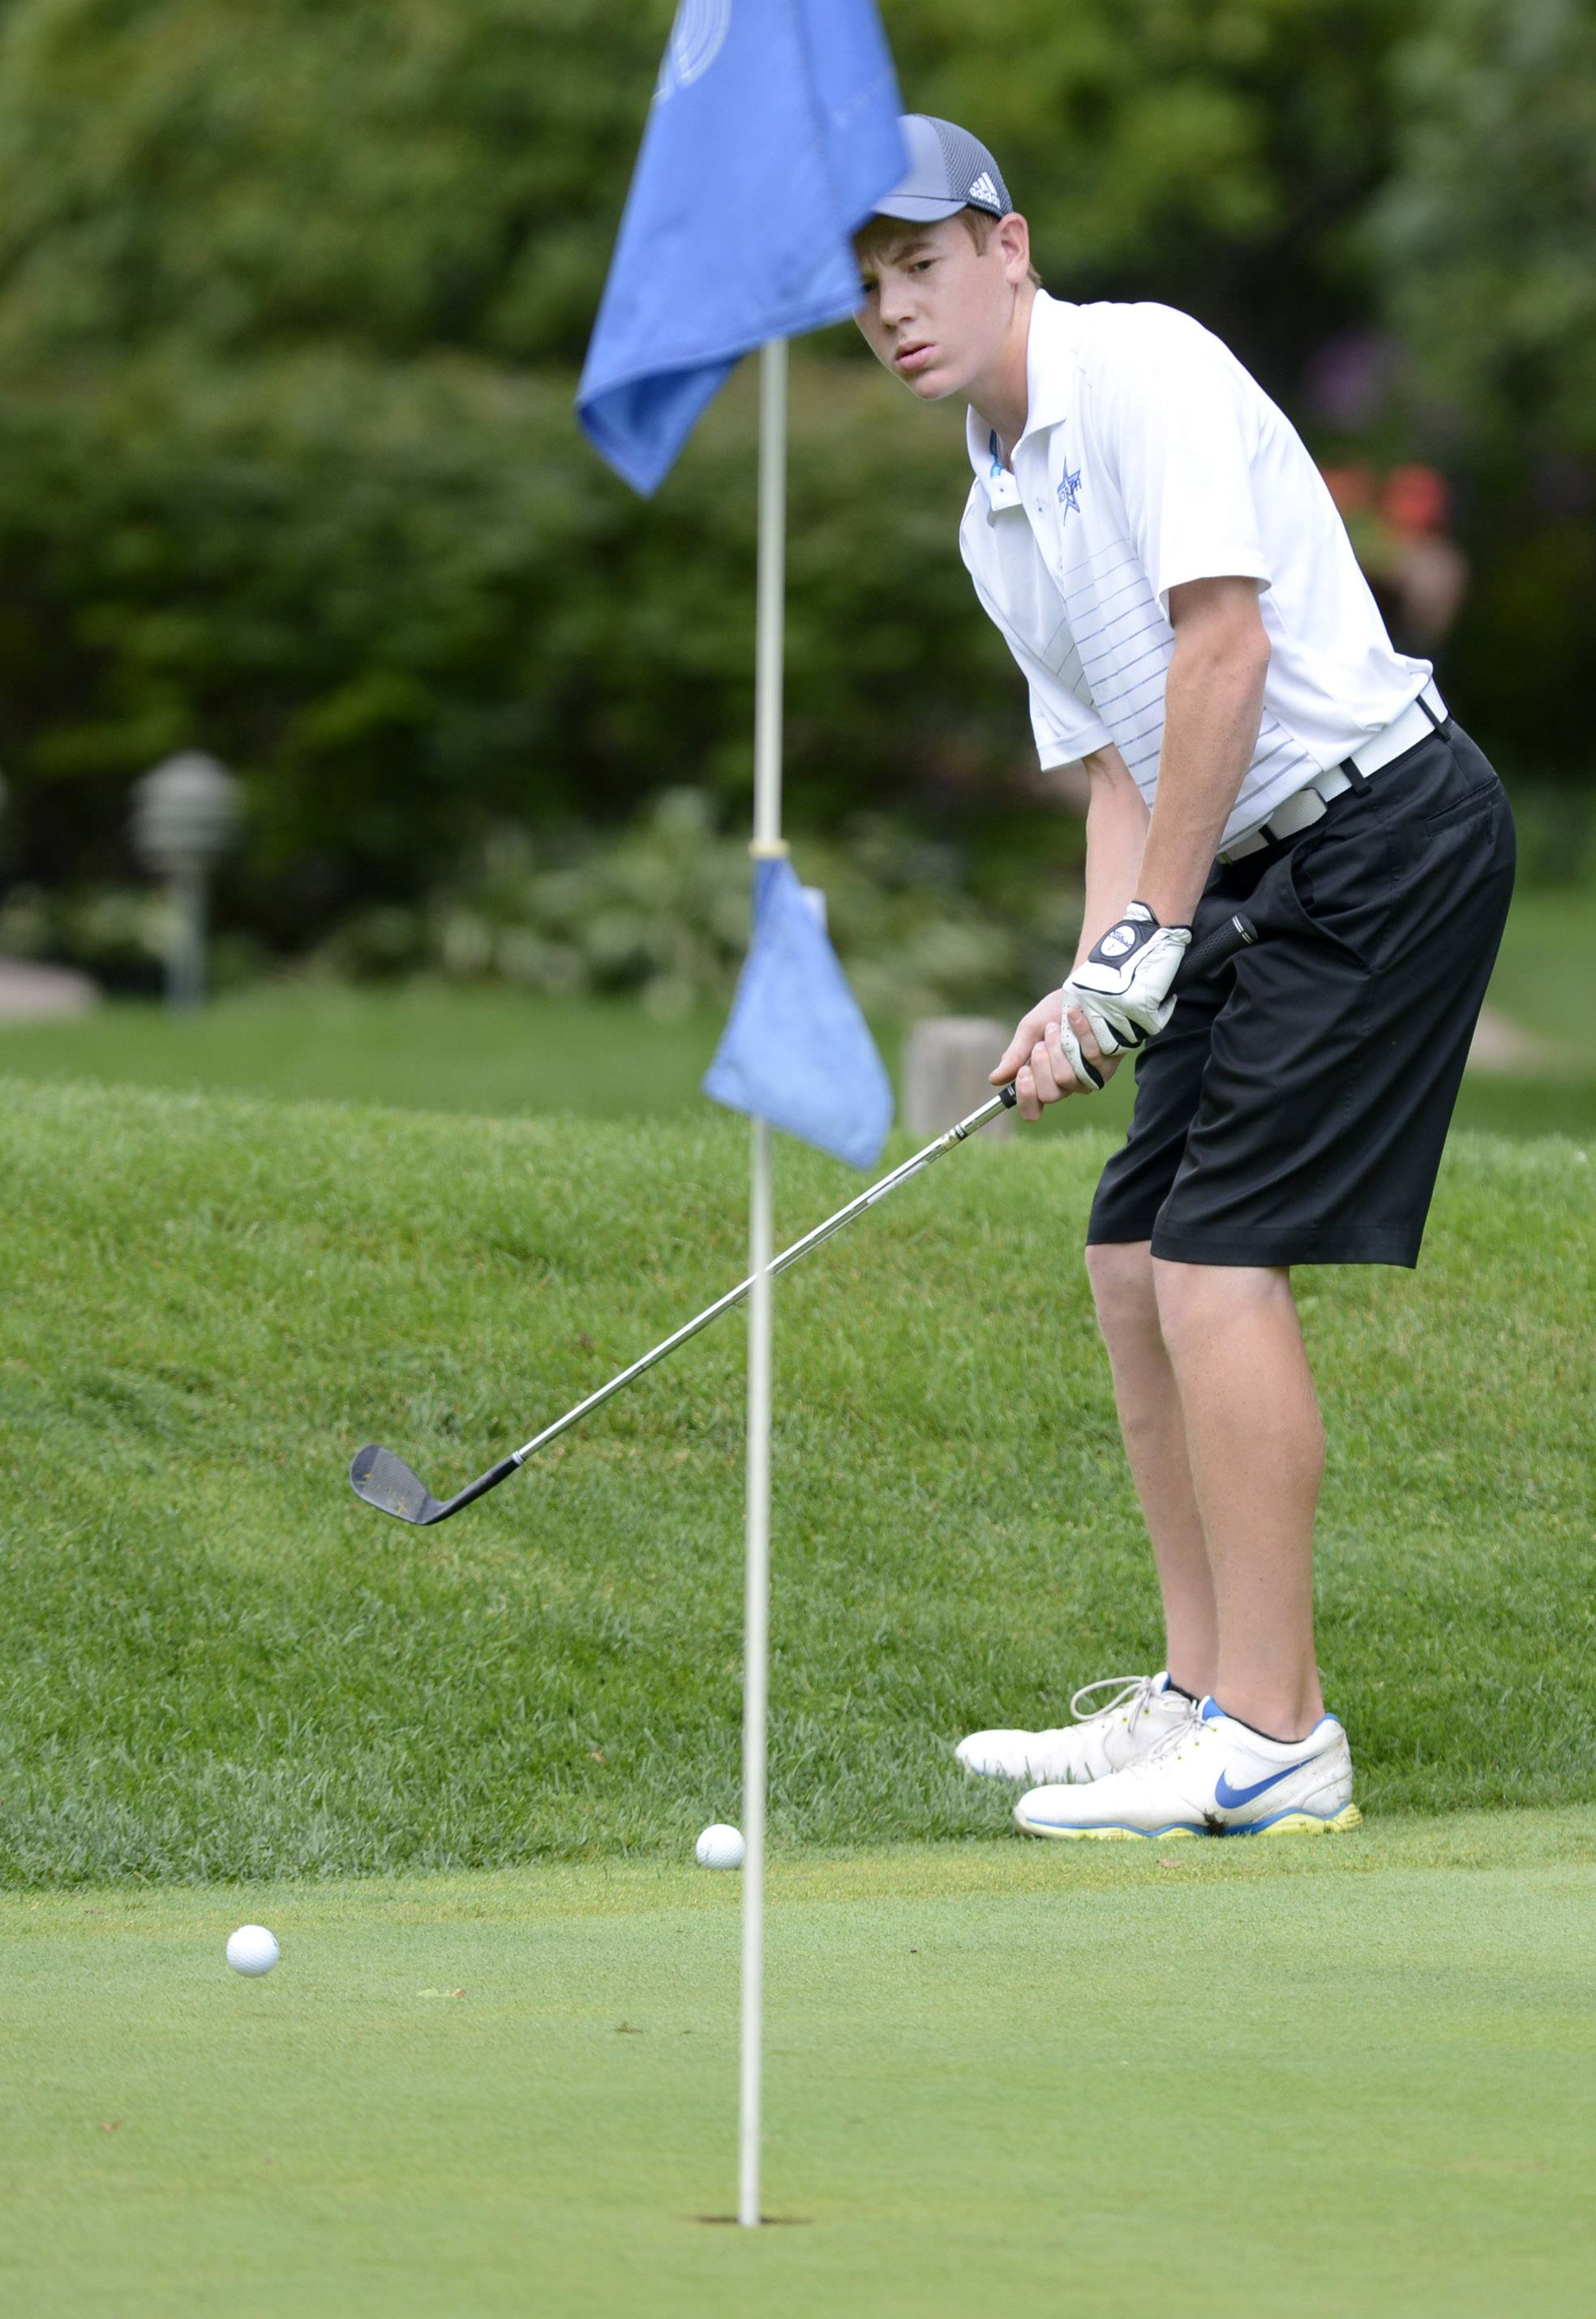 St. Charles North's Liam Smith putts Monday during the McChesney Cup at the Geneva Golf Club in Geneva.